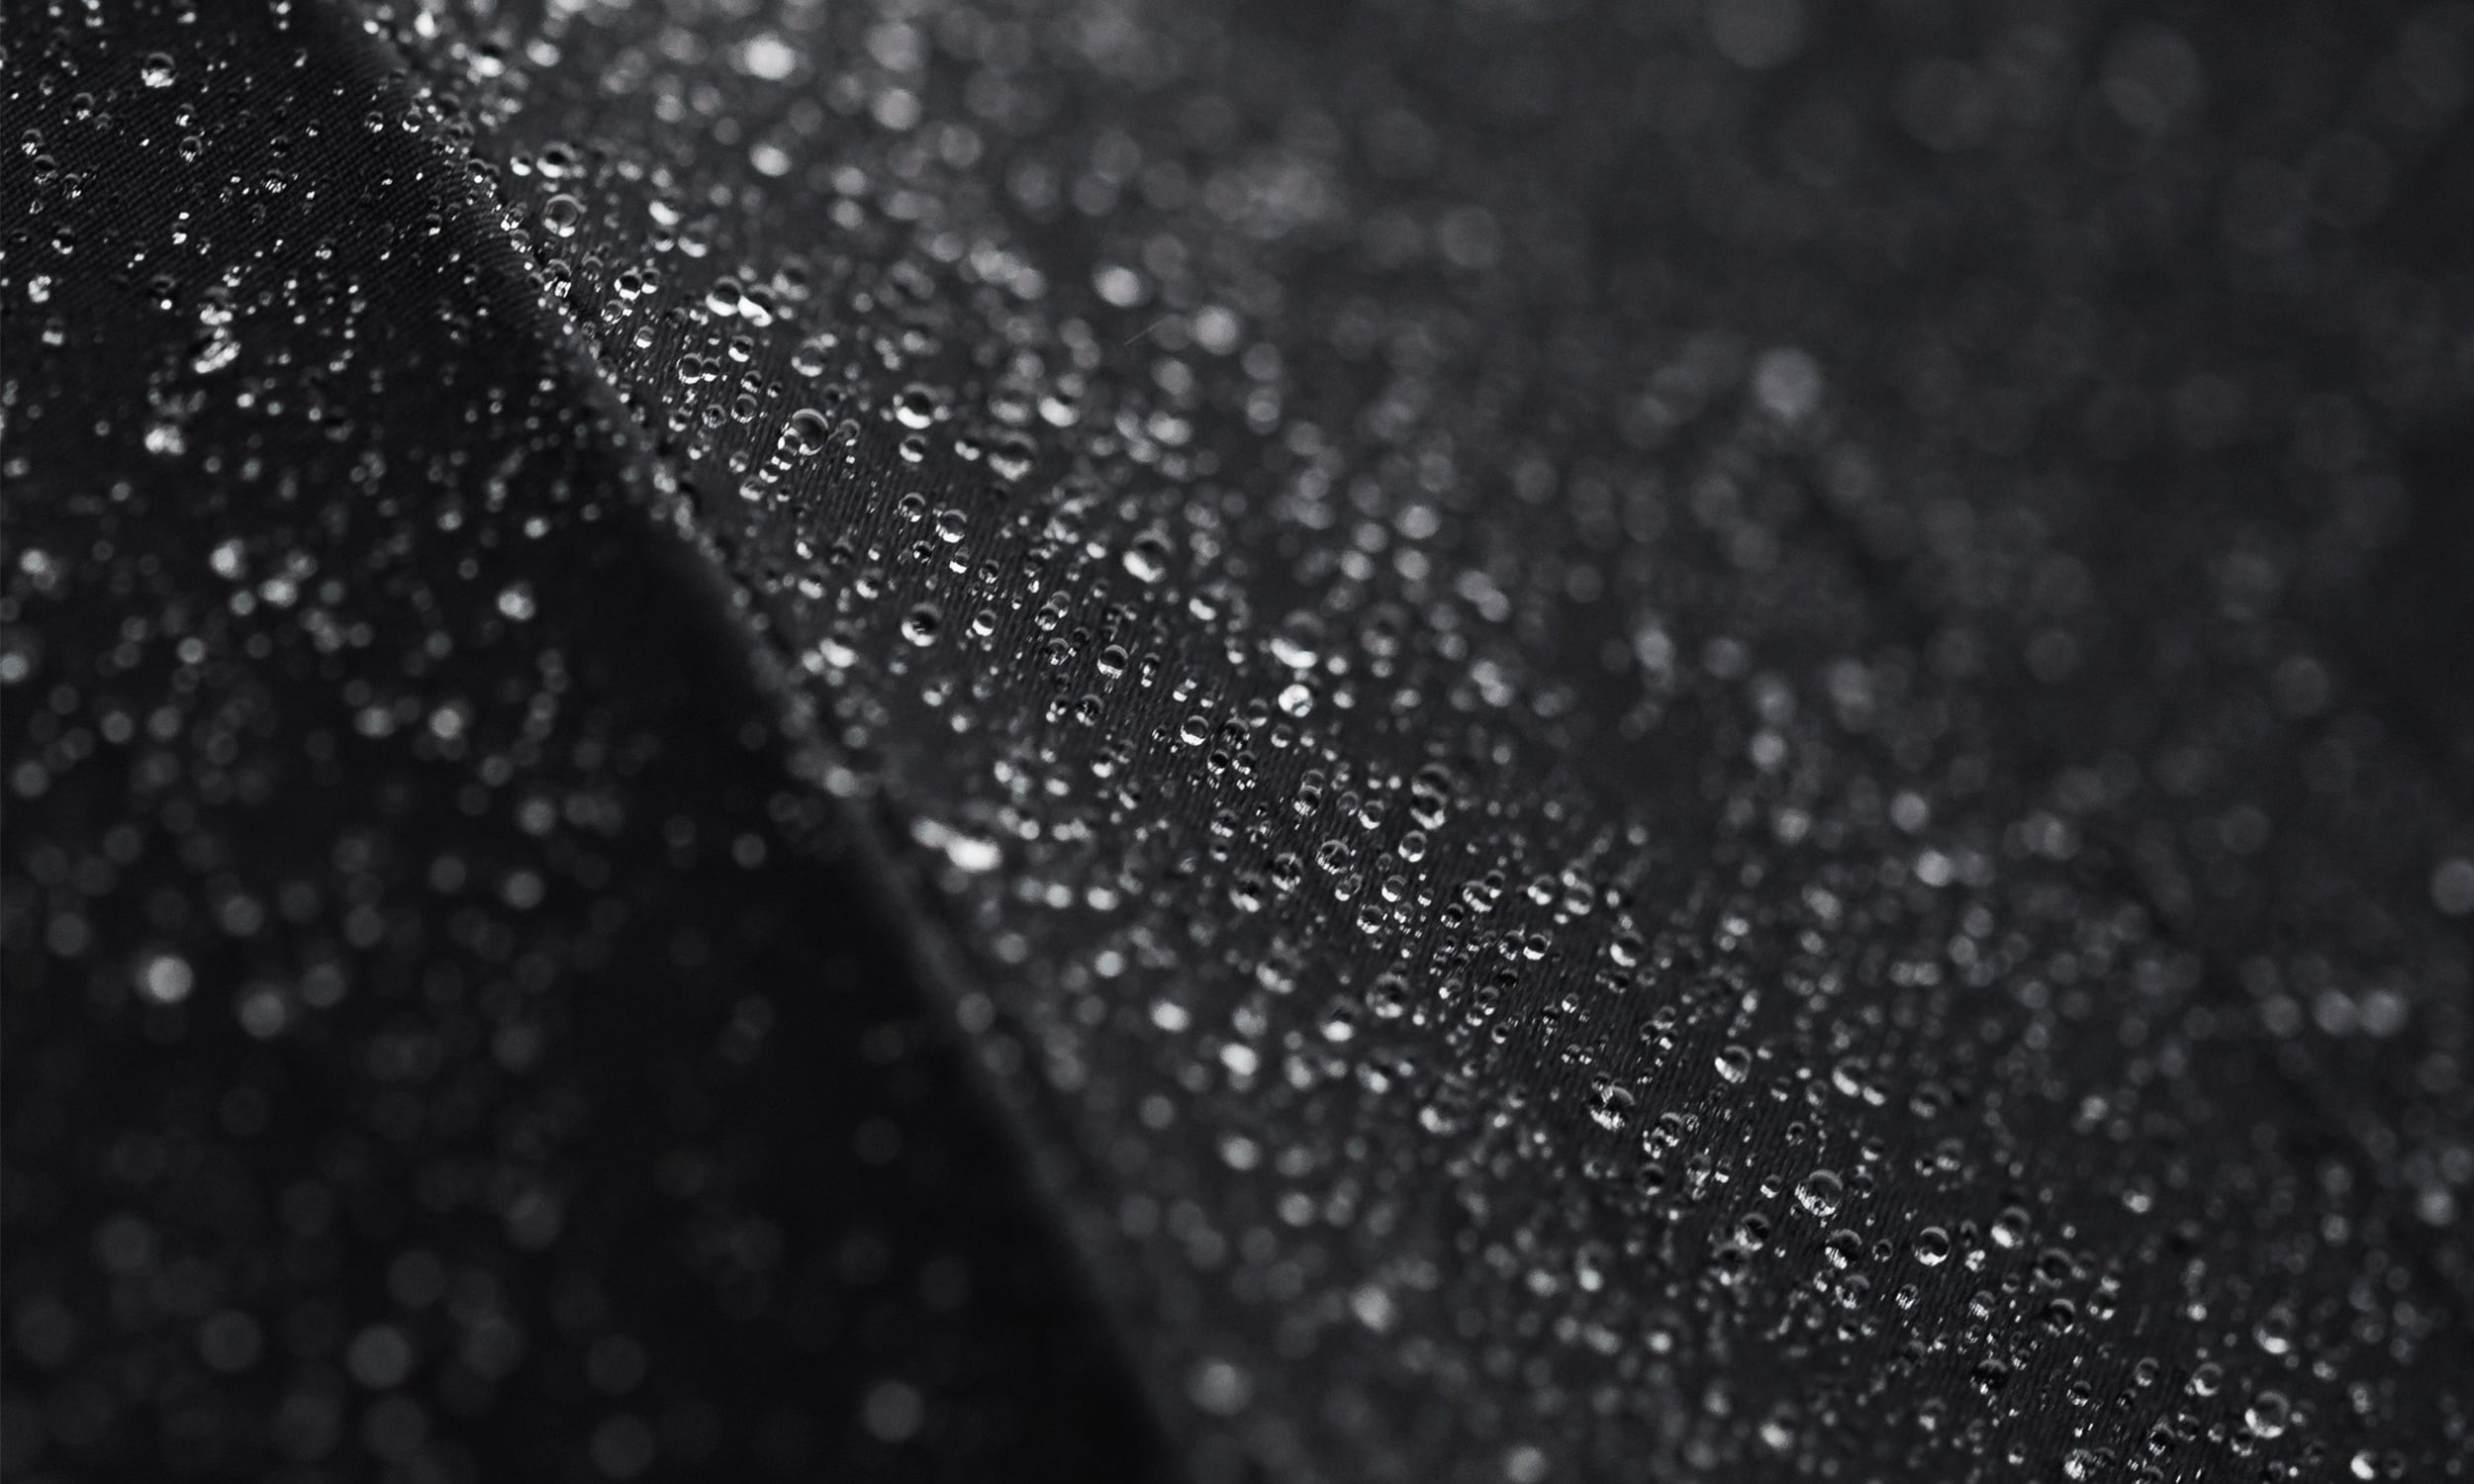 7cd41d035 For textiles — like clothing, jackets, or backpacks — the difference  between waterproof and water-resistant is in the fabric and the  construction.